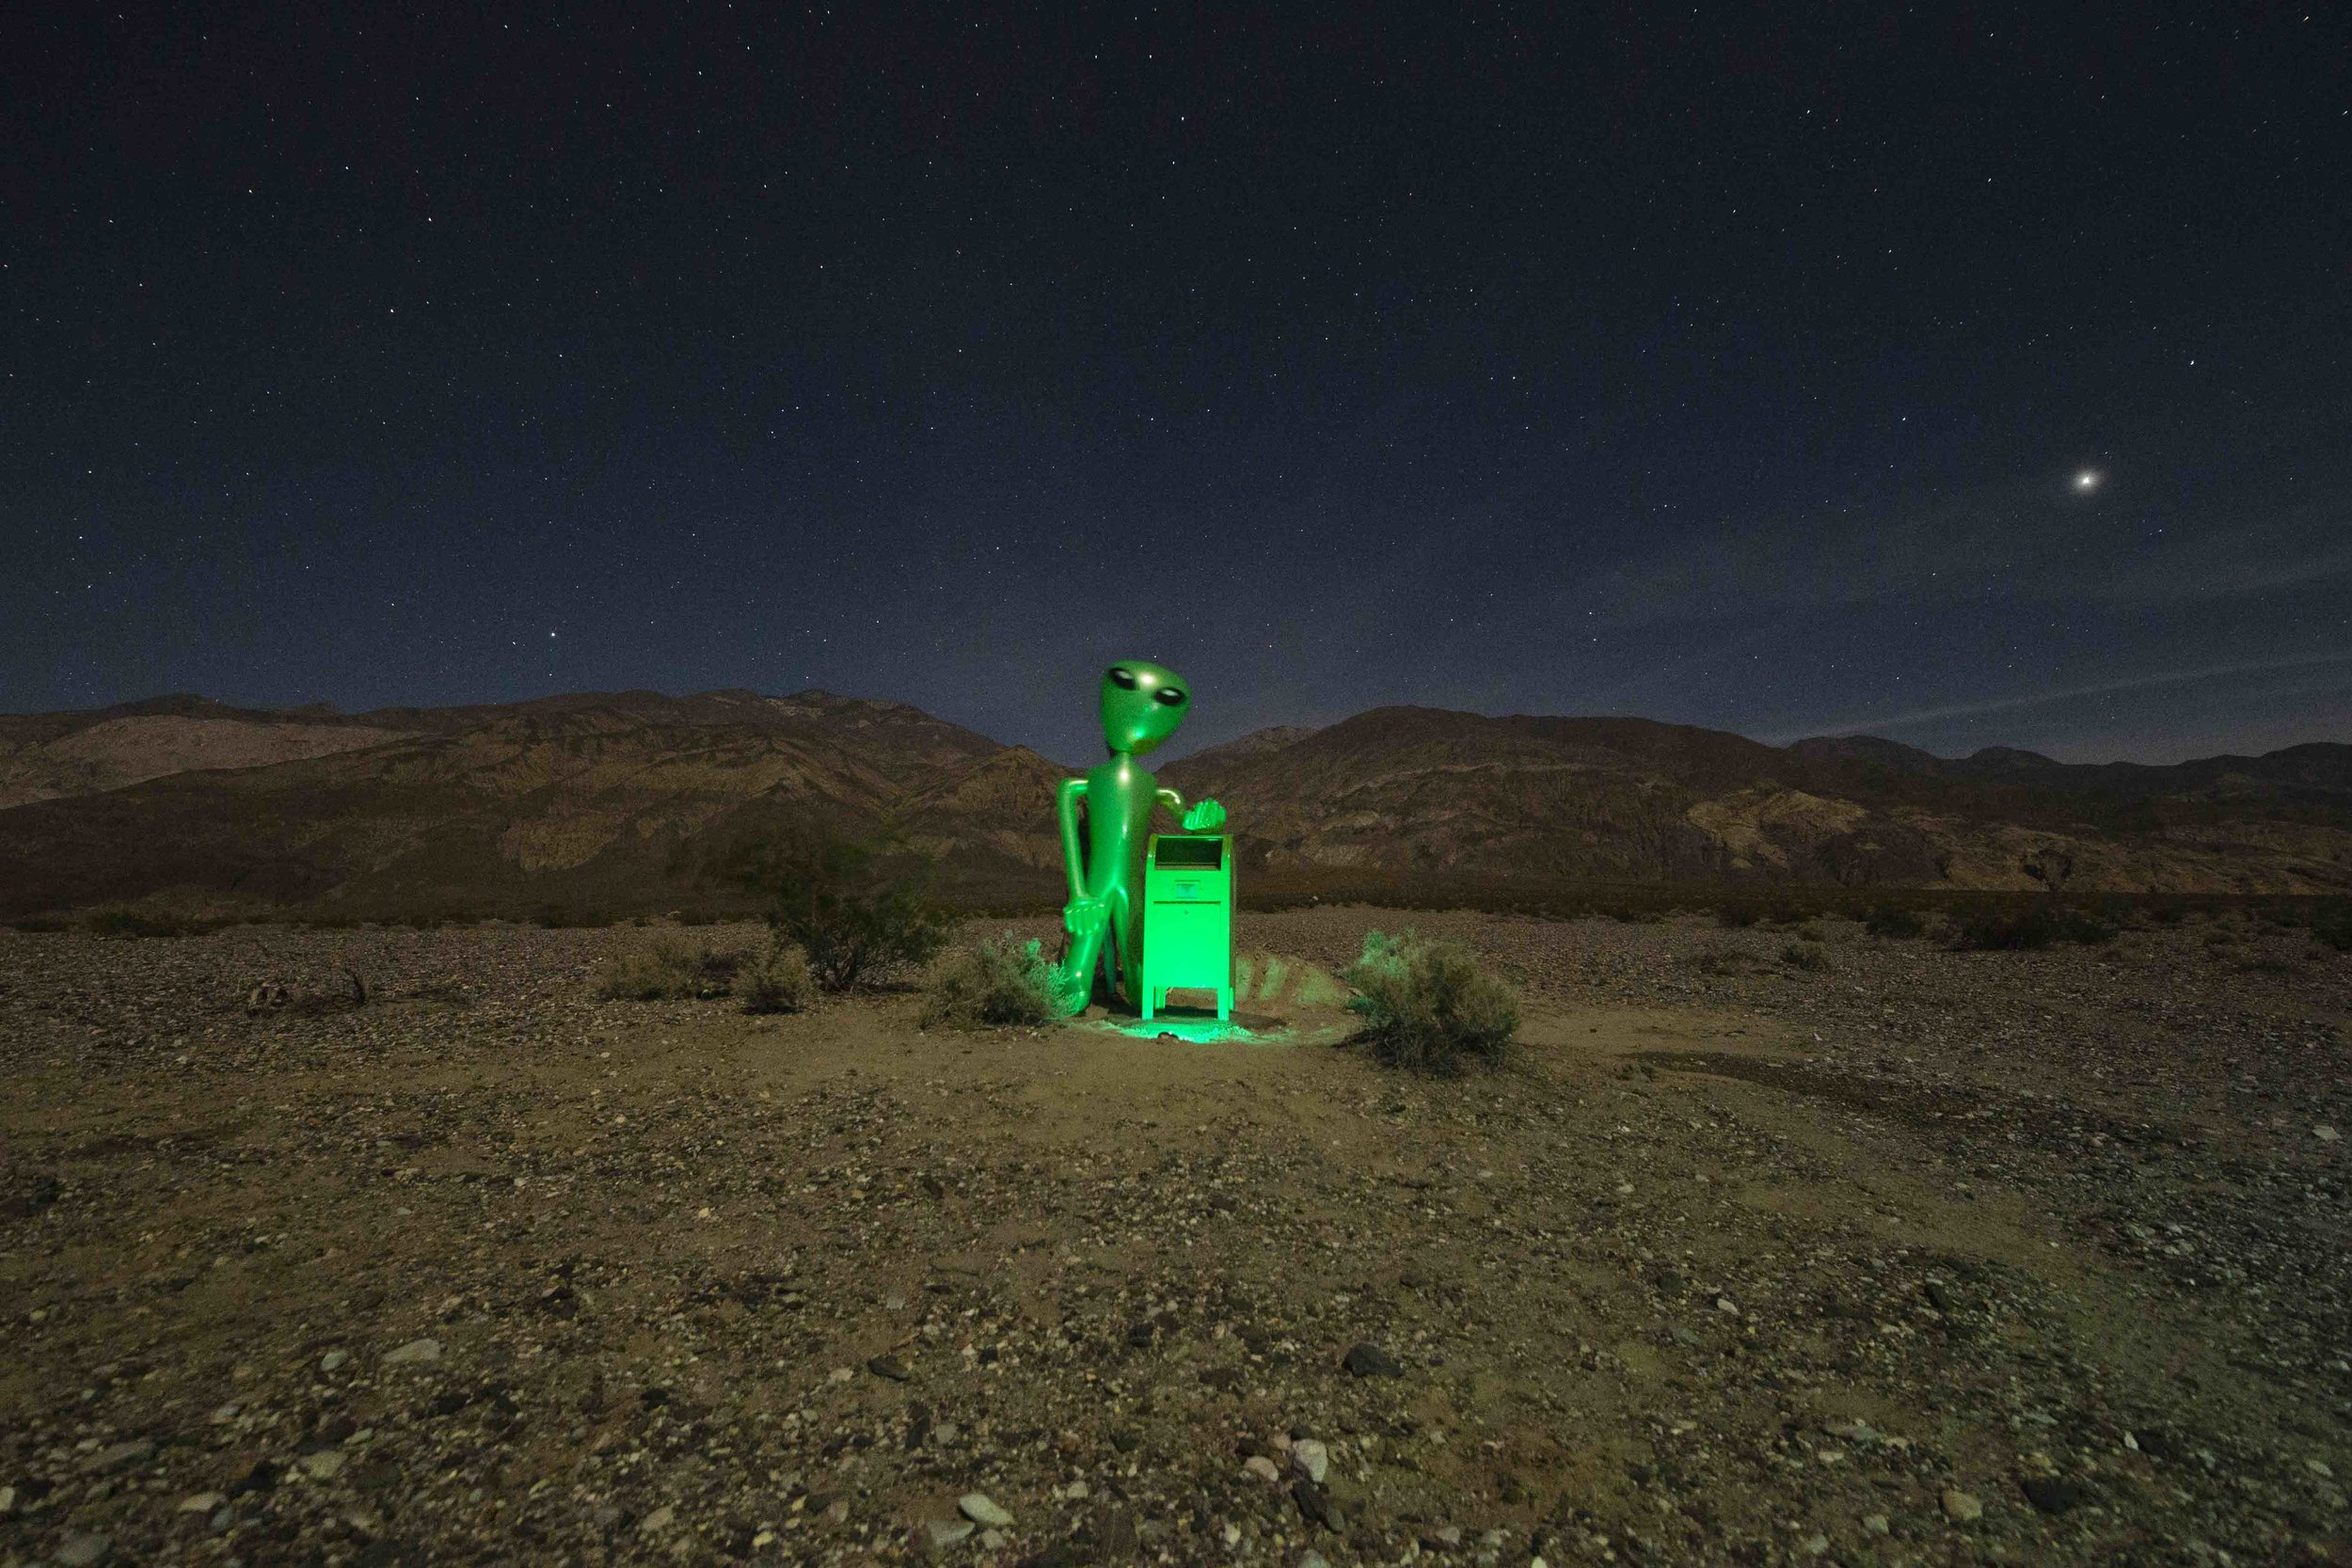 Death Valley Stargazing Camp — Home of the Alien Mailbox